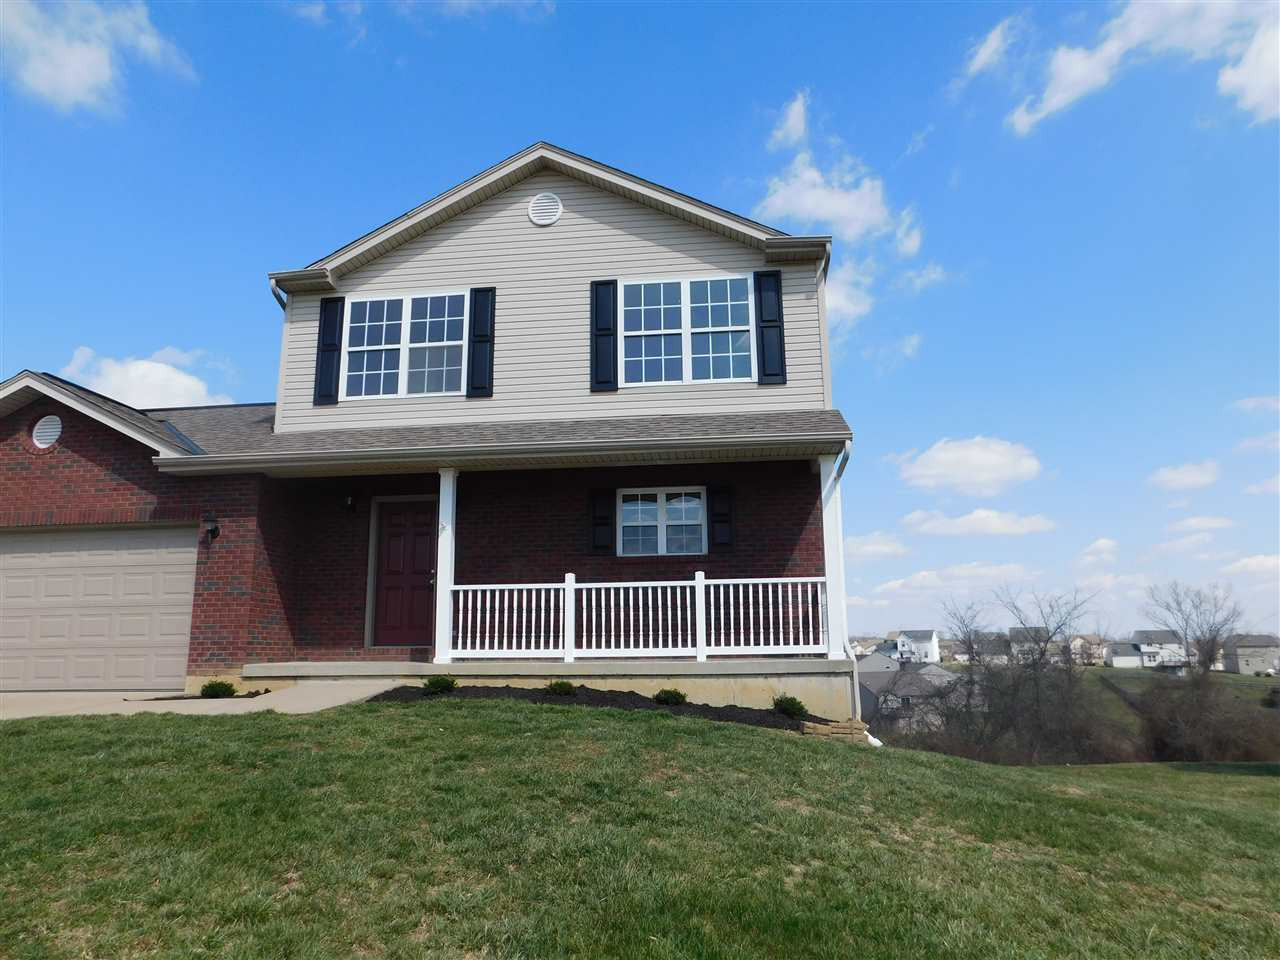 Photo 1 for 10393 Sharpsburg Dr Independence, KY 41051